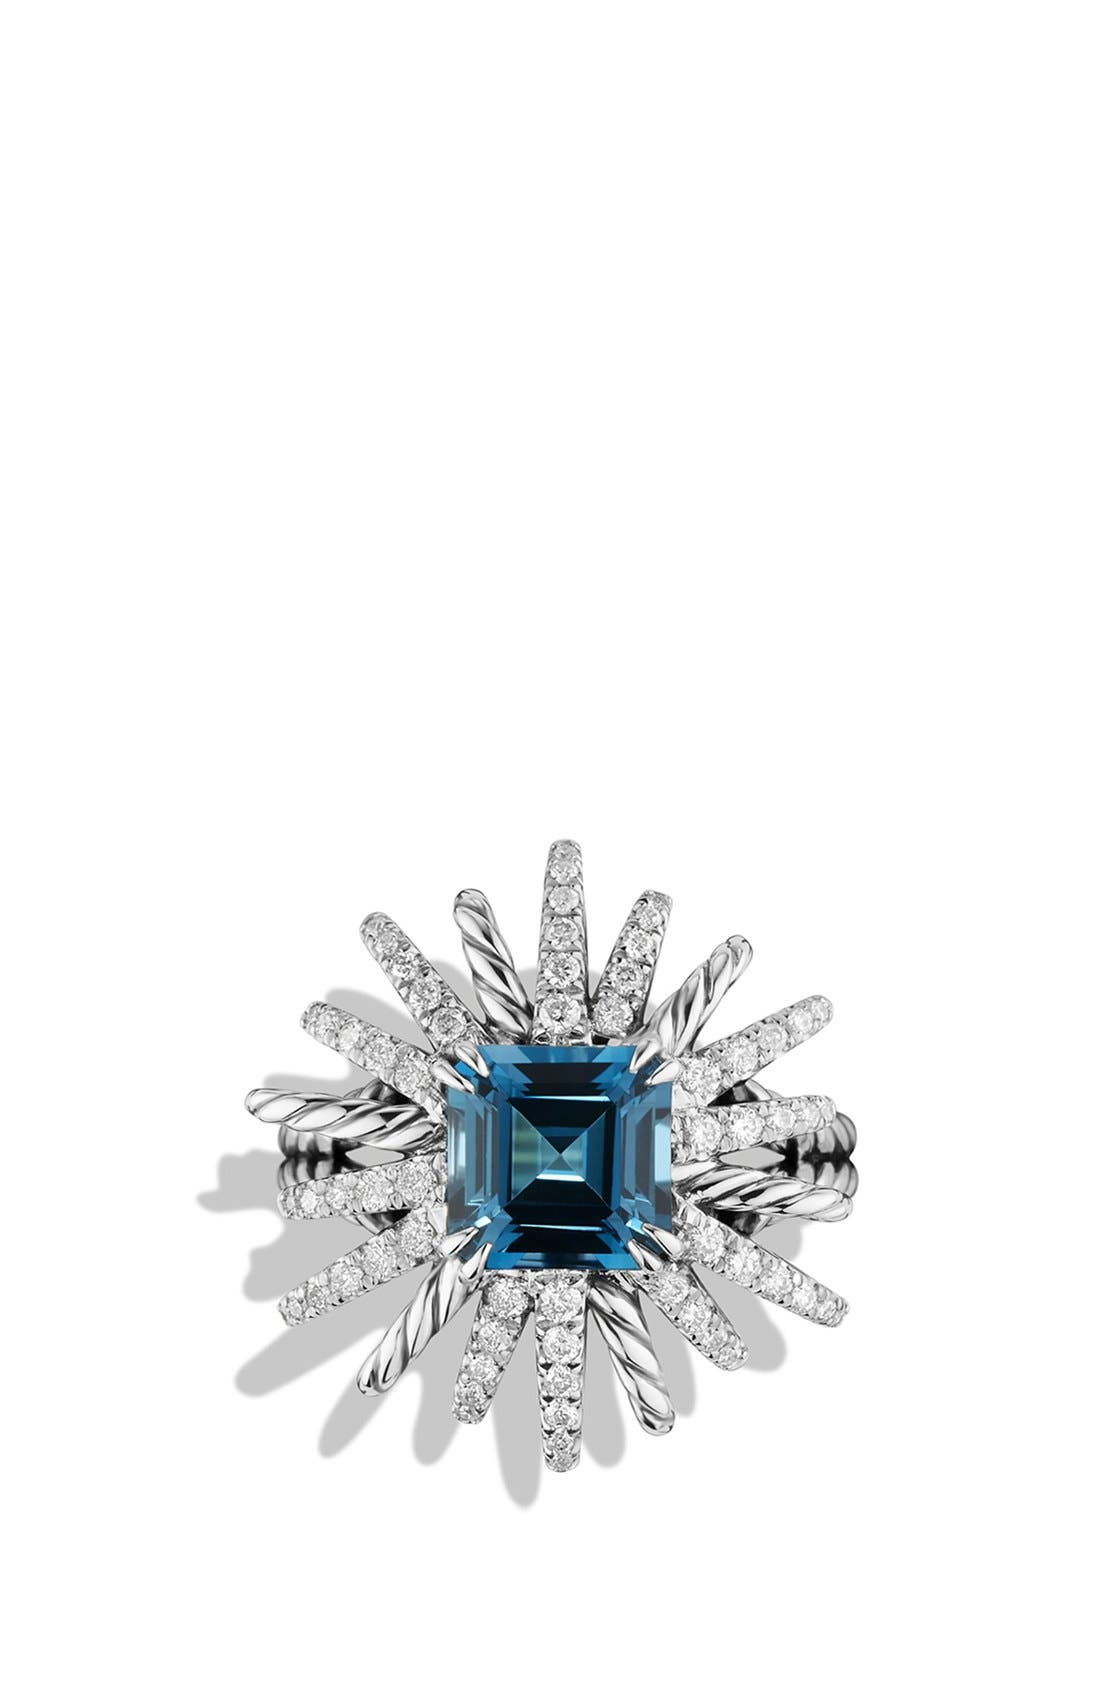 Alternate Image 3  - David Yurman 'Starburst' Ring with Diamonds in Silver